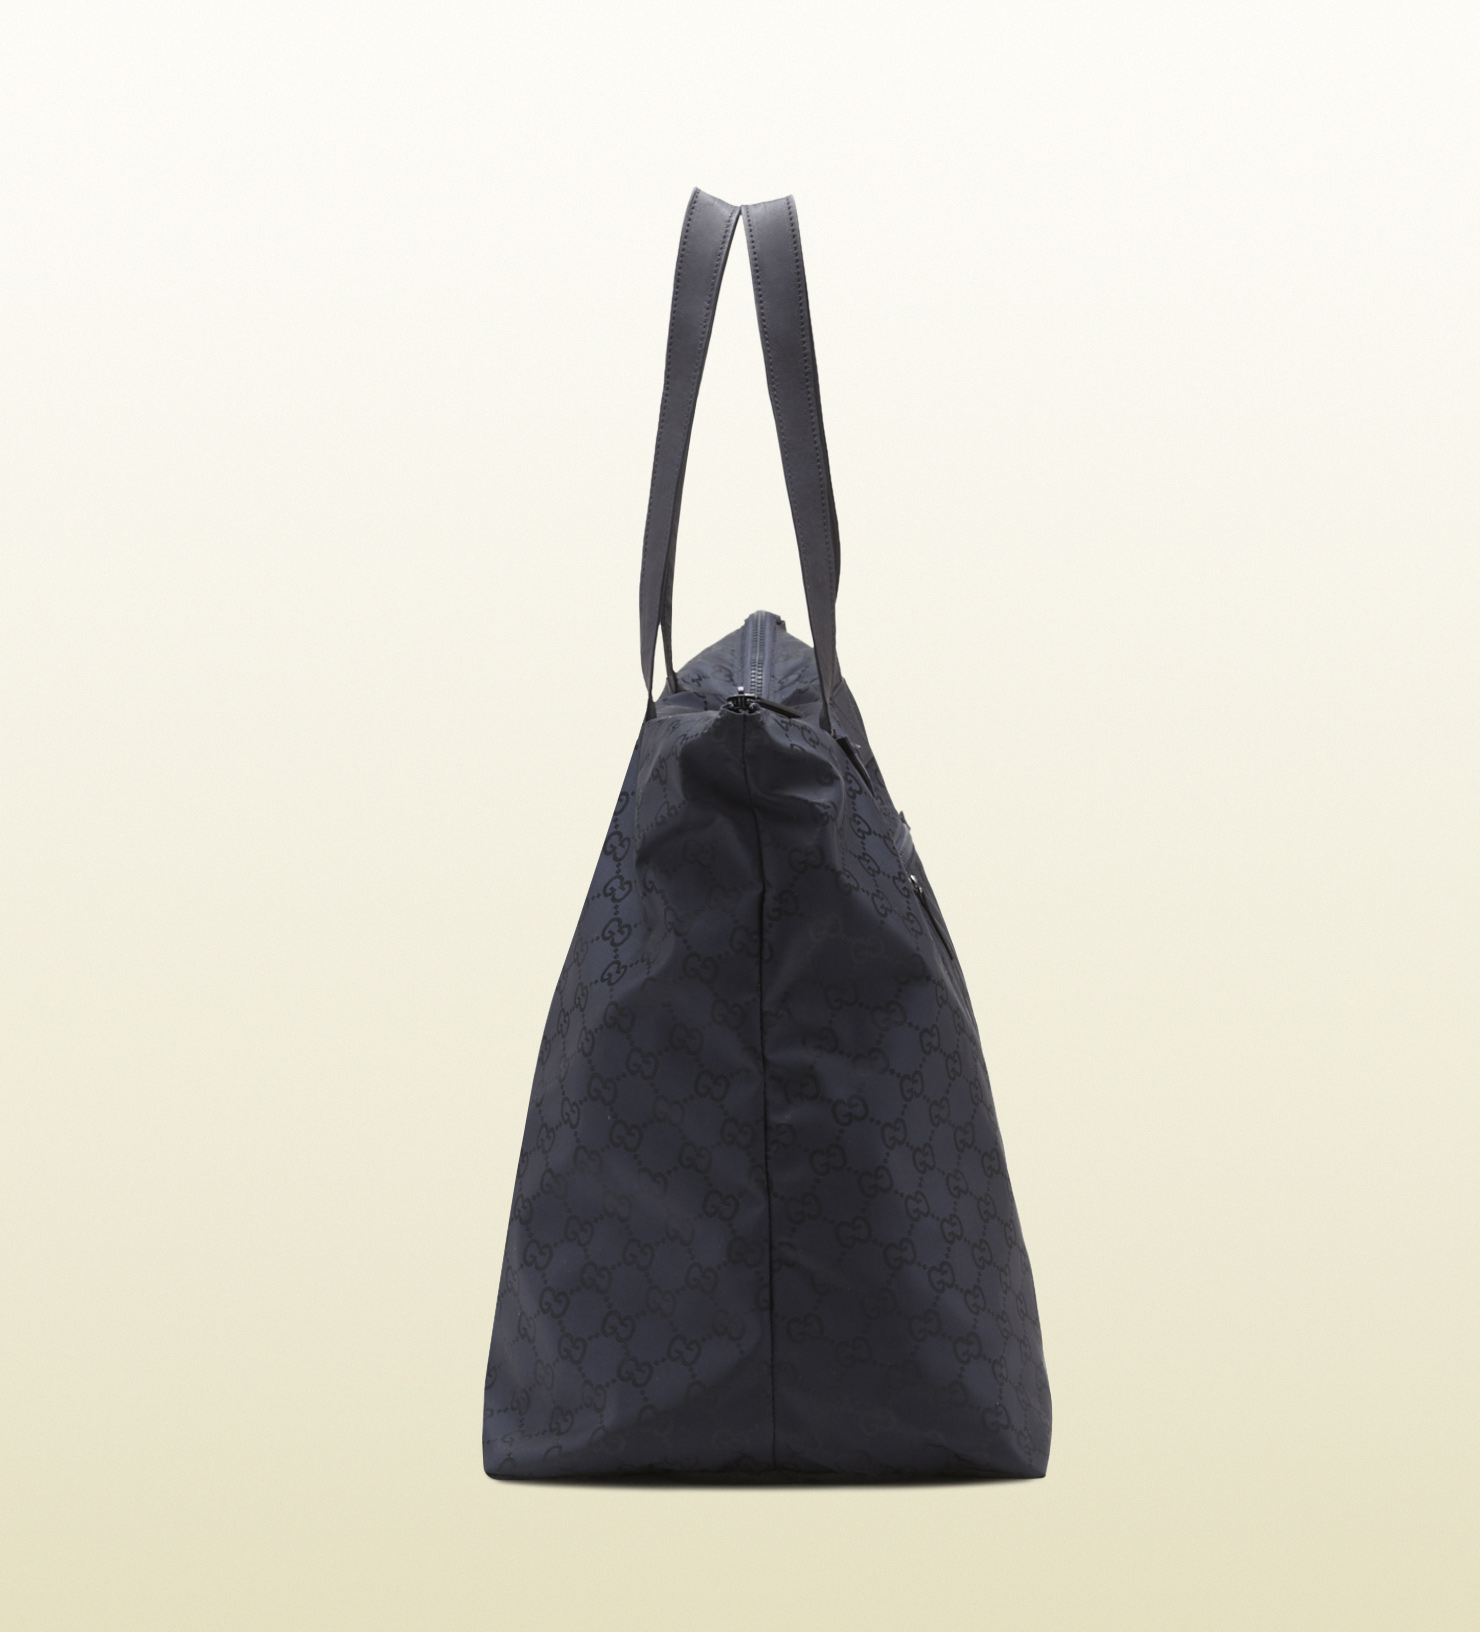 12acec61f58c Lyst - Gucci Blue Gg Nylon Duffel Bag From Viaggio Collection in ...